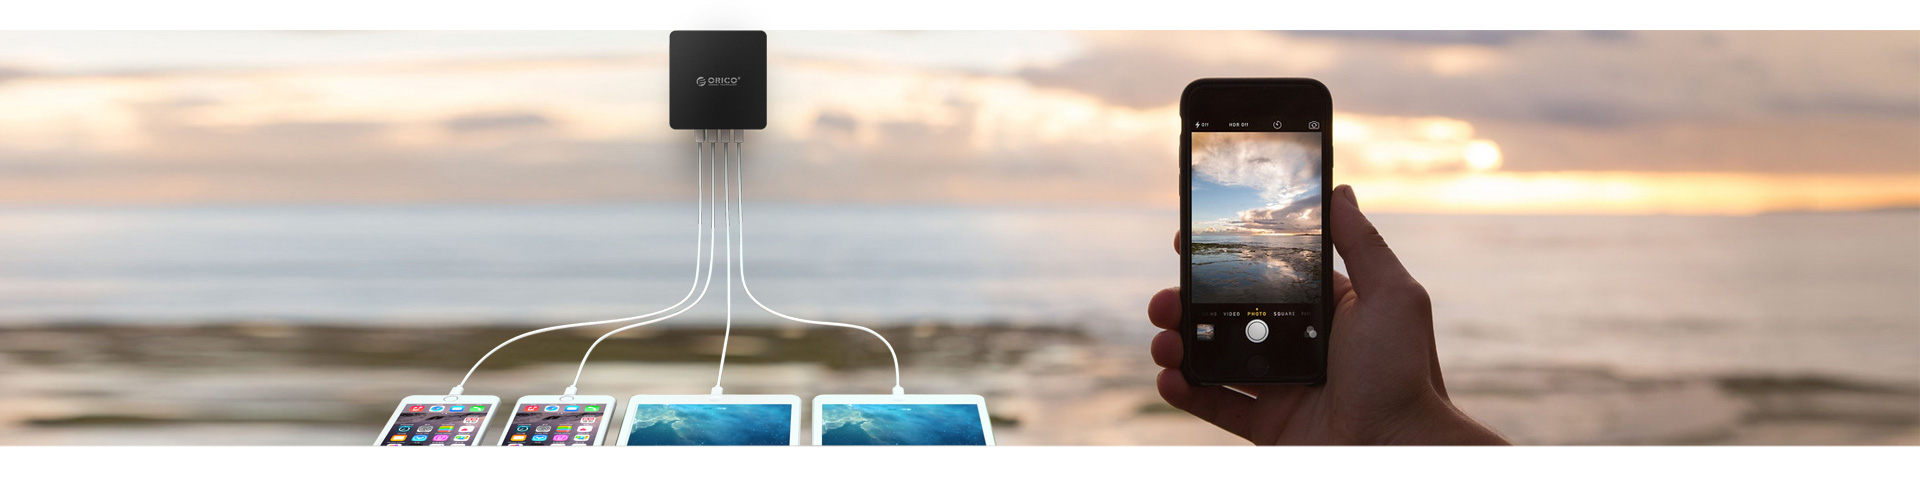 ORICO 30W 4 ports USB Super Charger